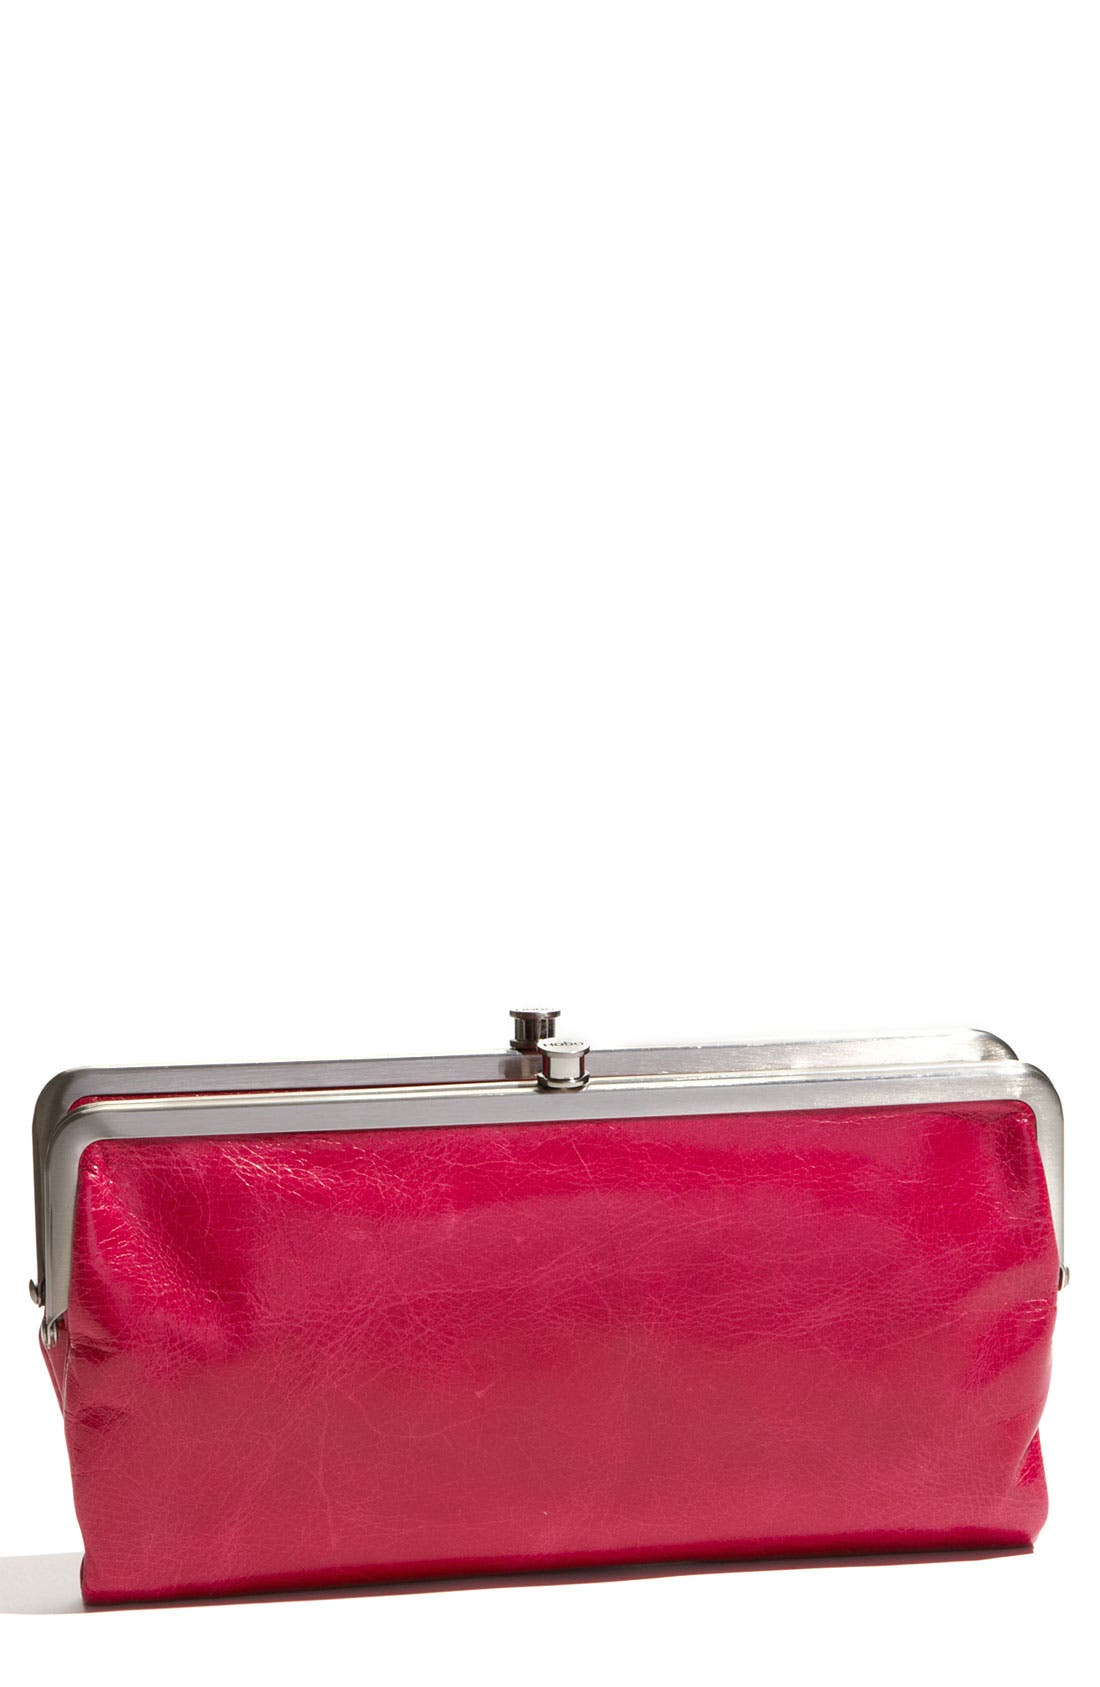 Main Image - Hobo 'Lauren' Leather Double Frame Clutch